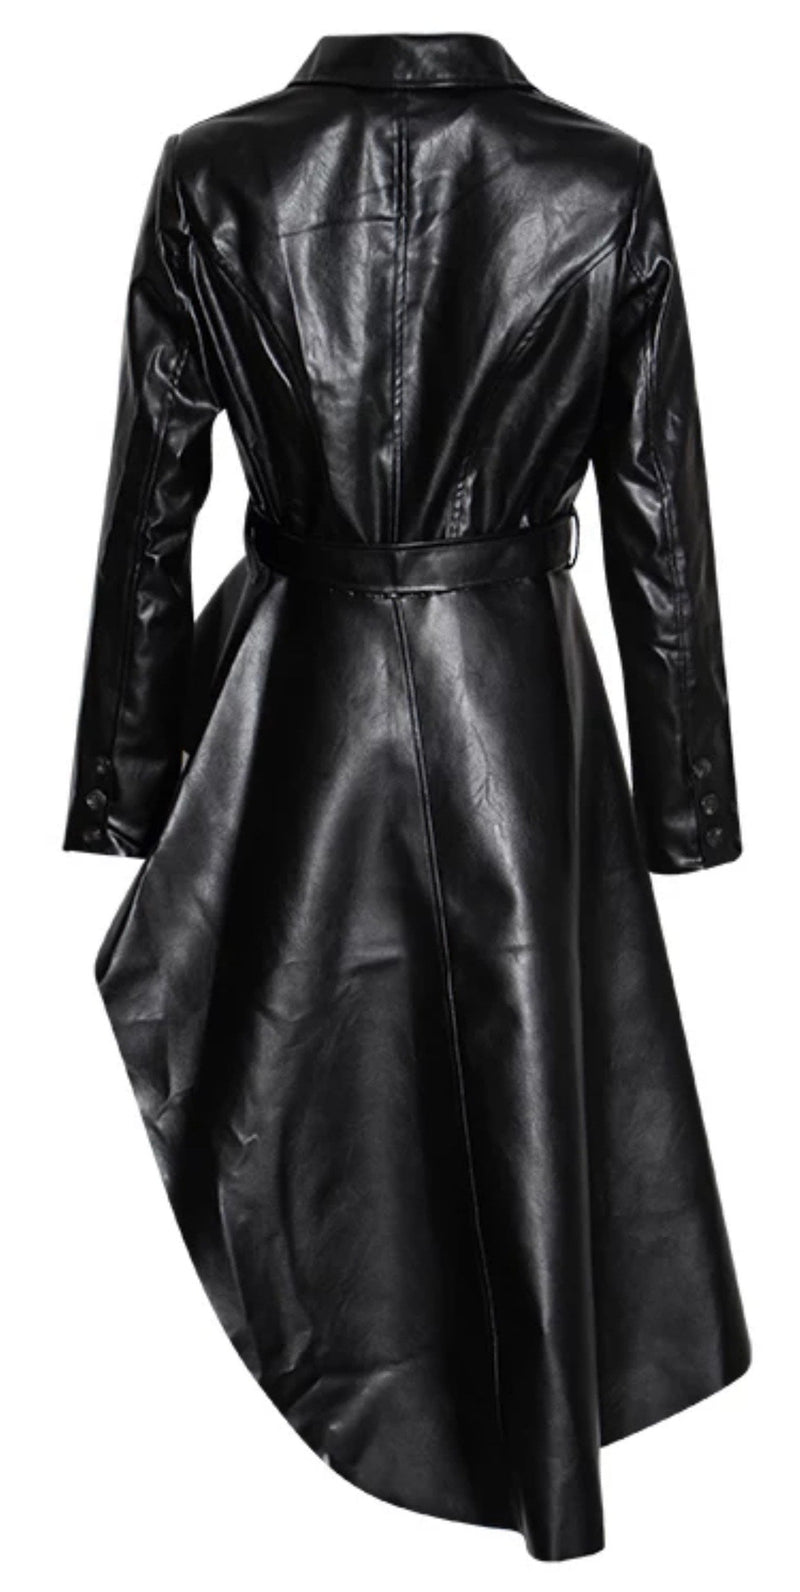 Jessica Bara Alannah Asymmetrical Belted Leather Jacket